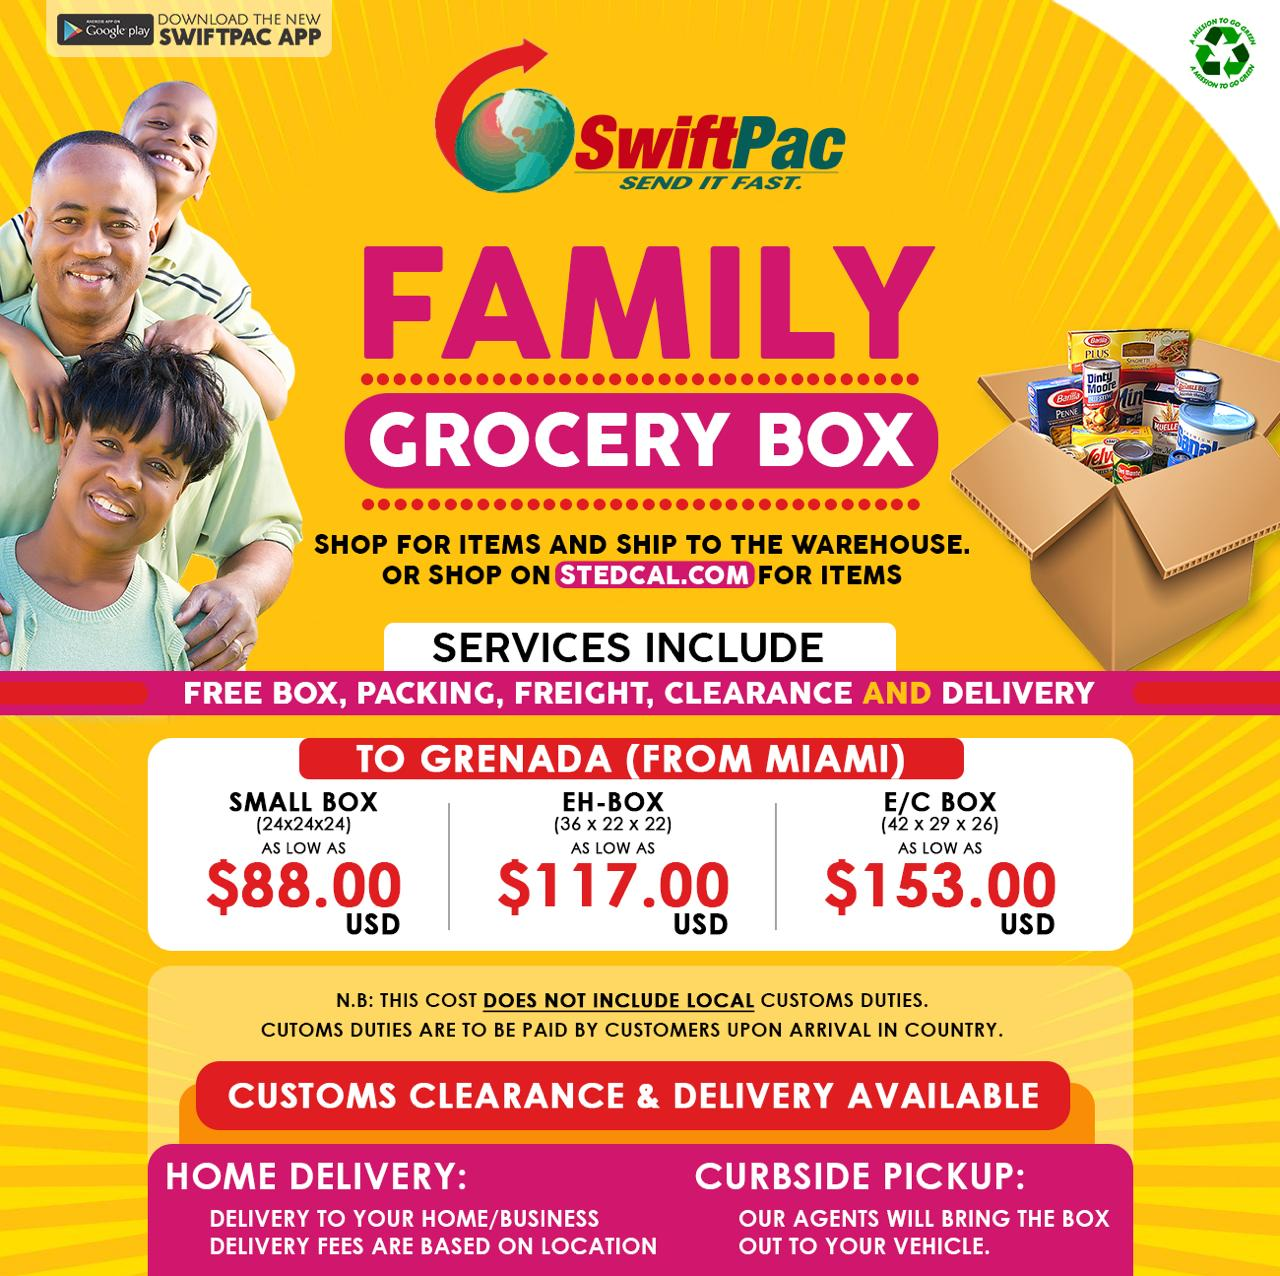 SwiftPac Family Grocery Box